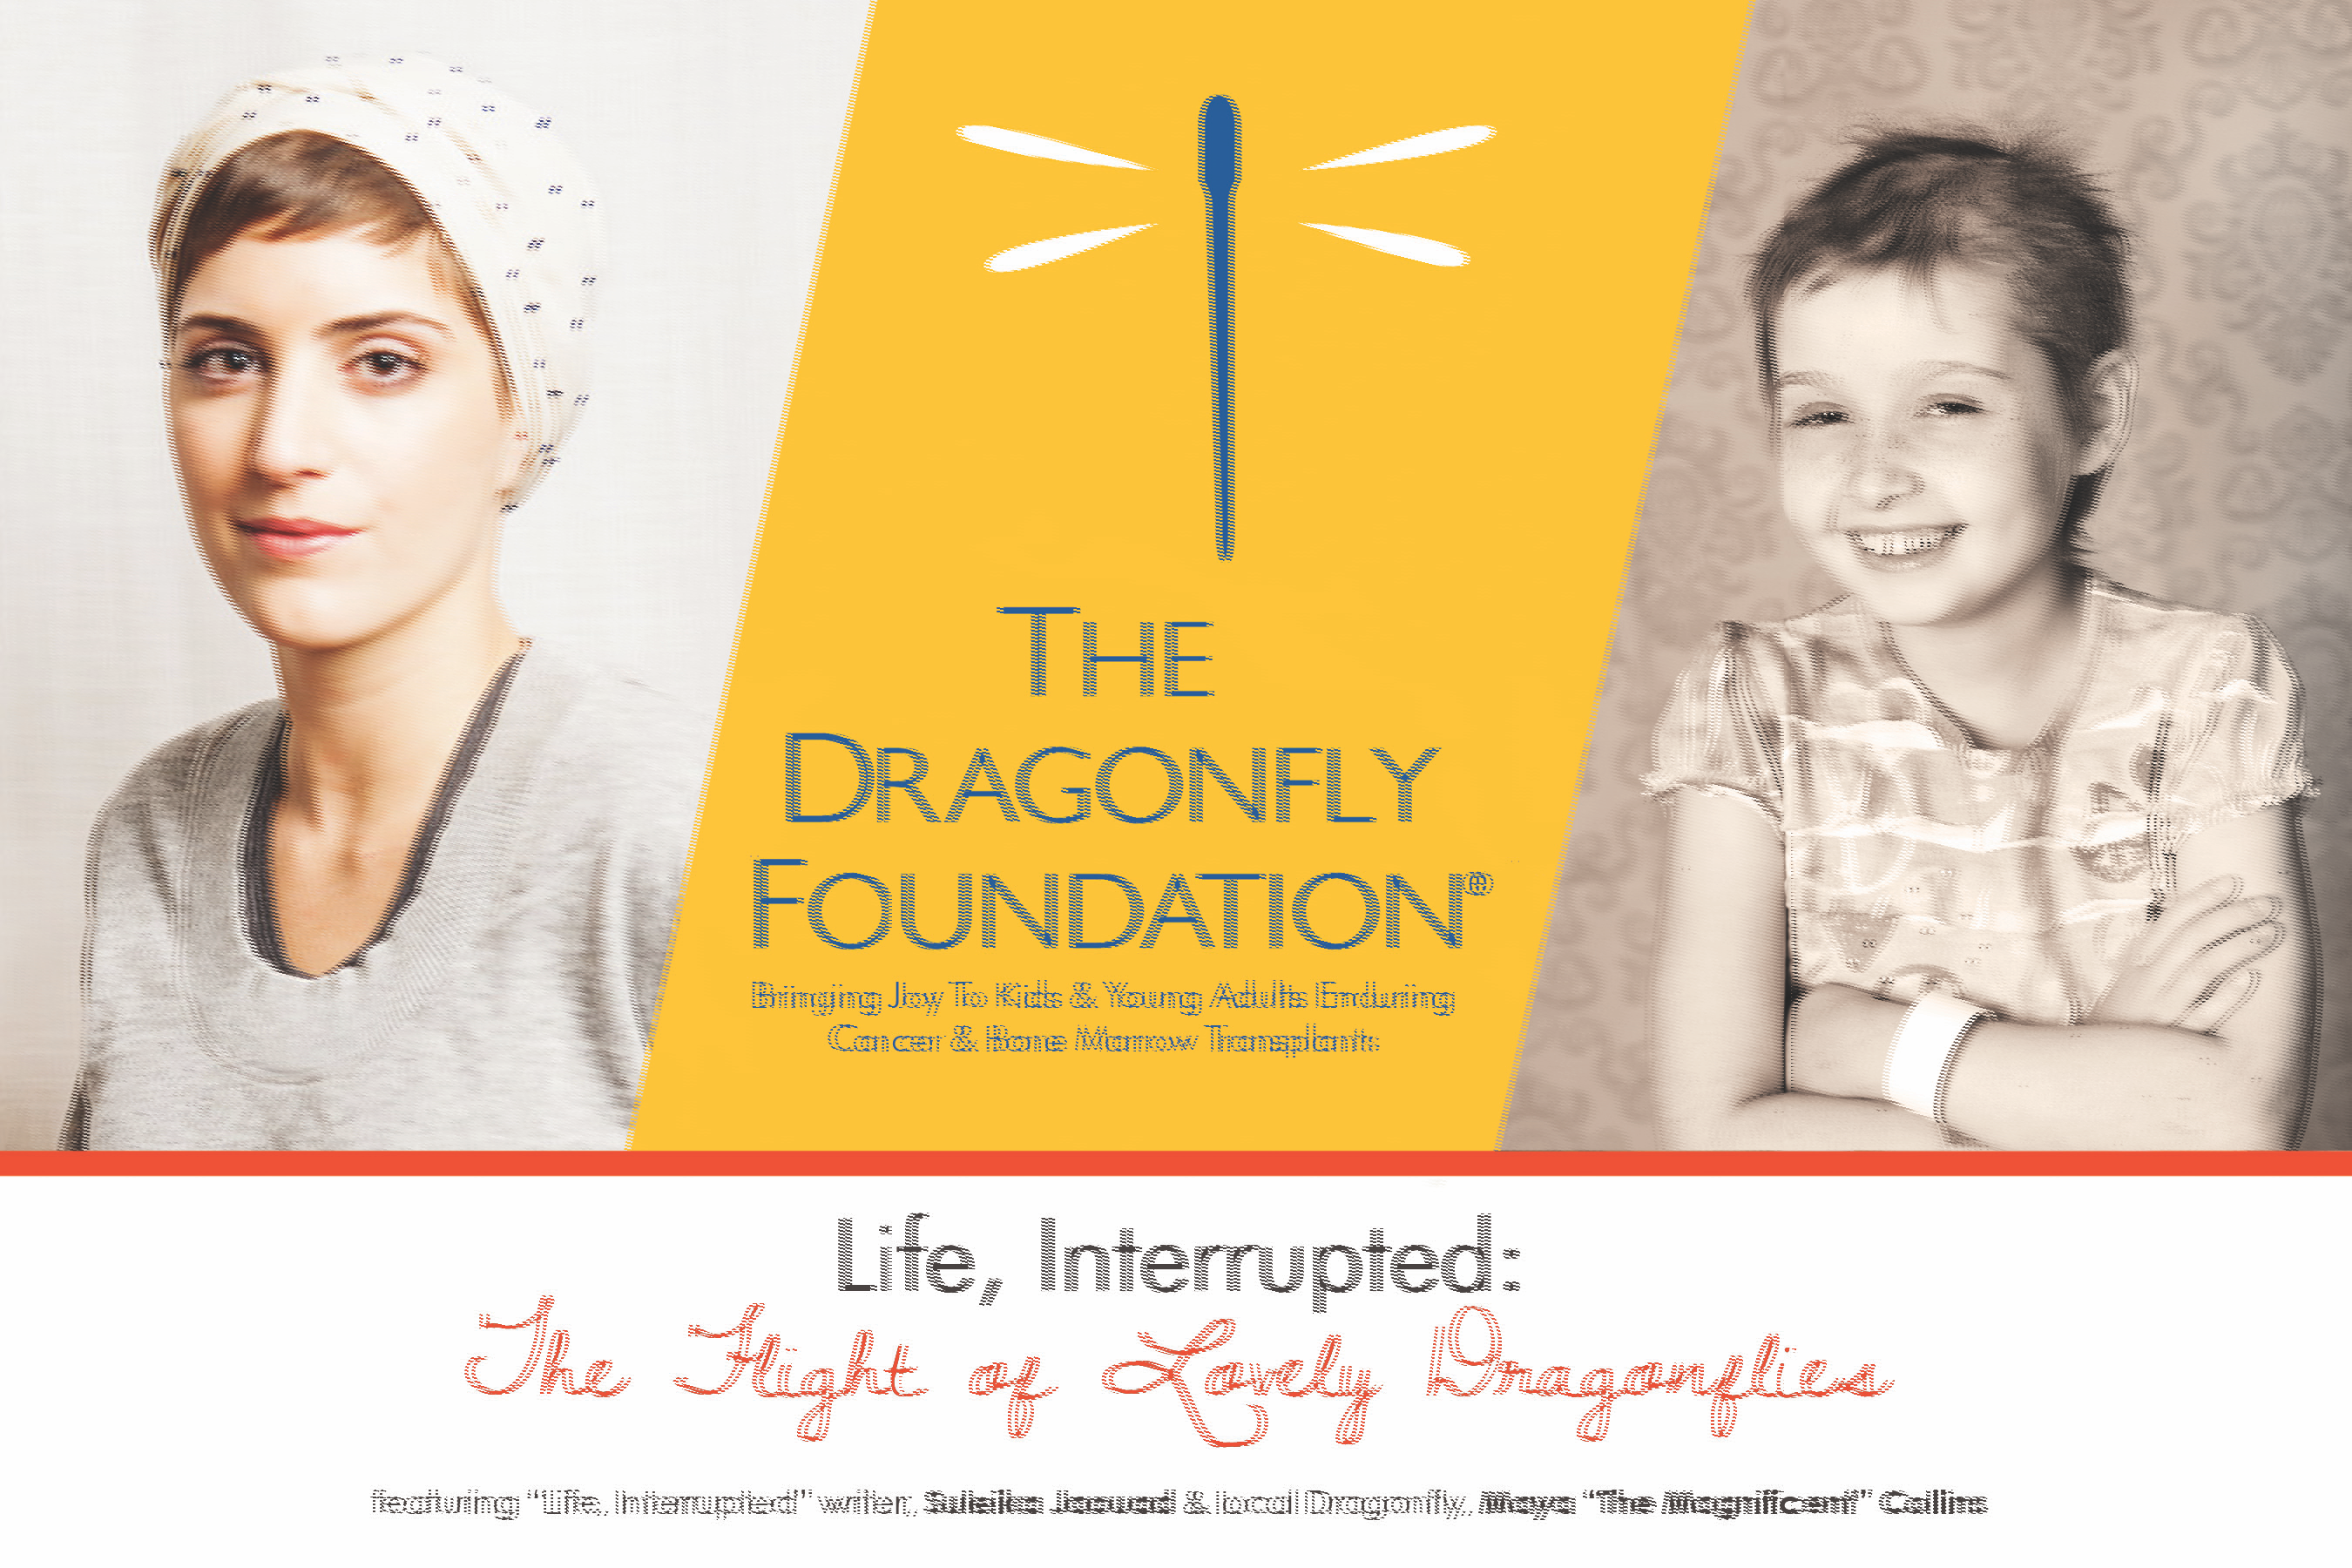 The Flight of Lovely Dragonflies